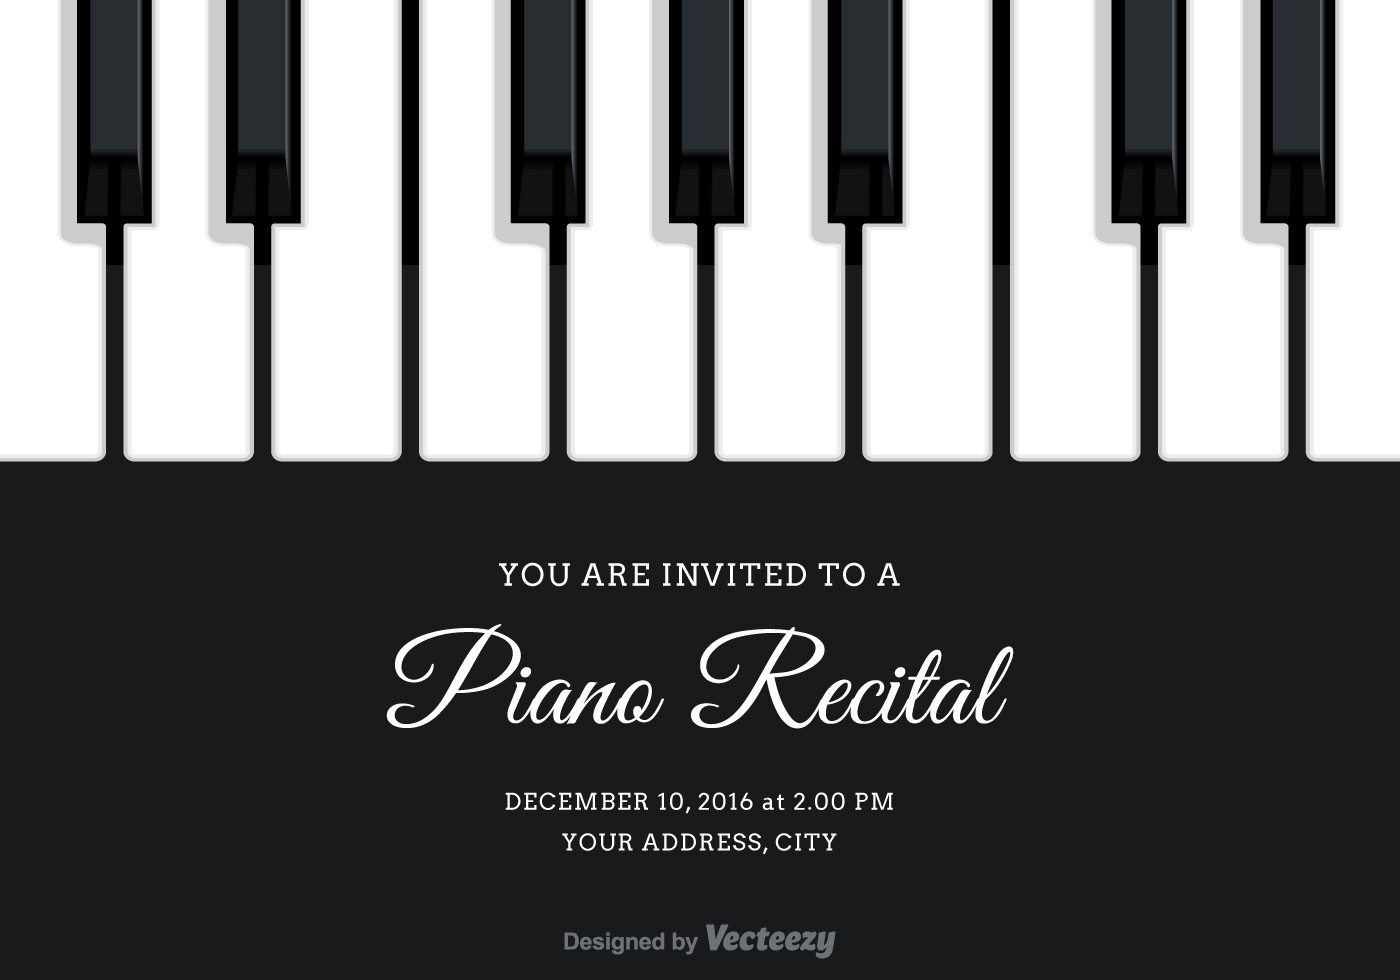 free vector piano recital invitation download free vector art stock graphics images. Black Bedroom Furniture Sets. Home Design Ideas